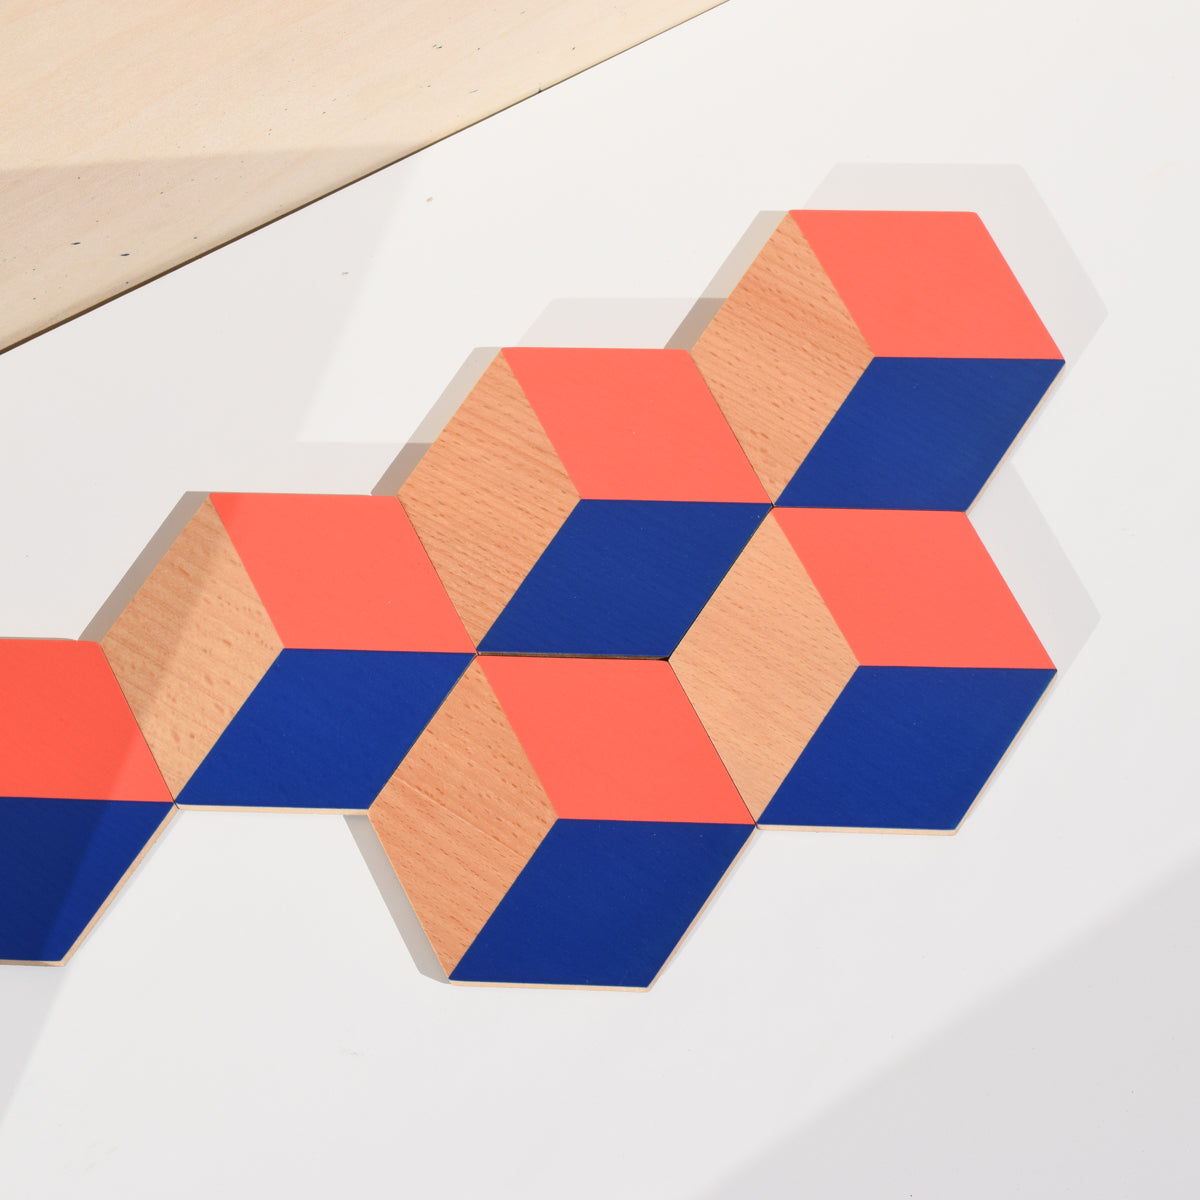 Table Tiles / Commonplace